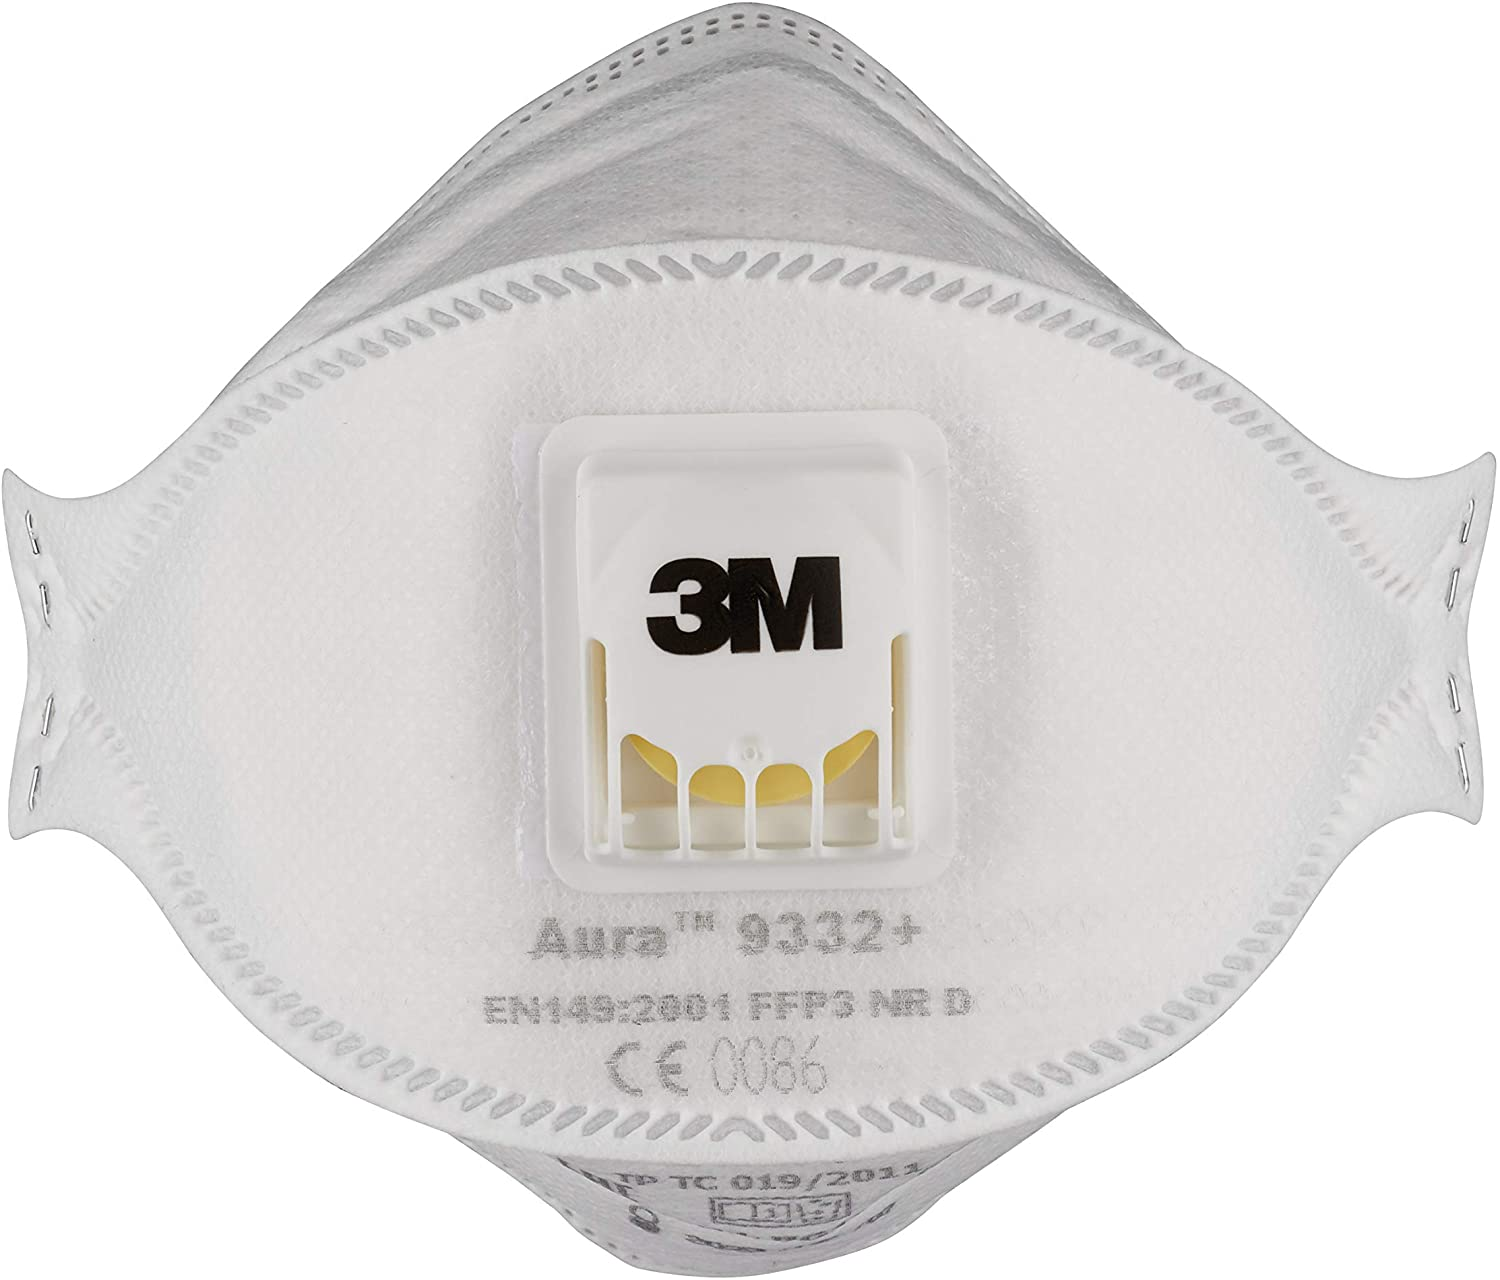 3M 9332PP Valve Mask Folded, White - Pack of 2